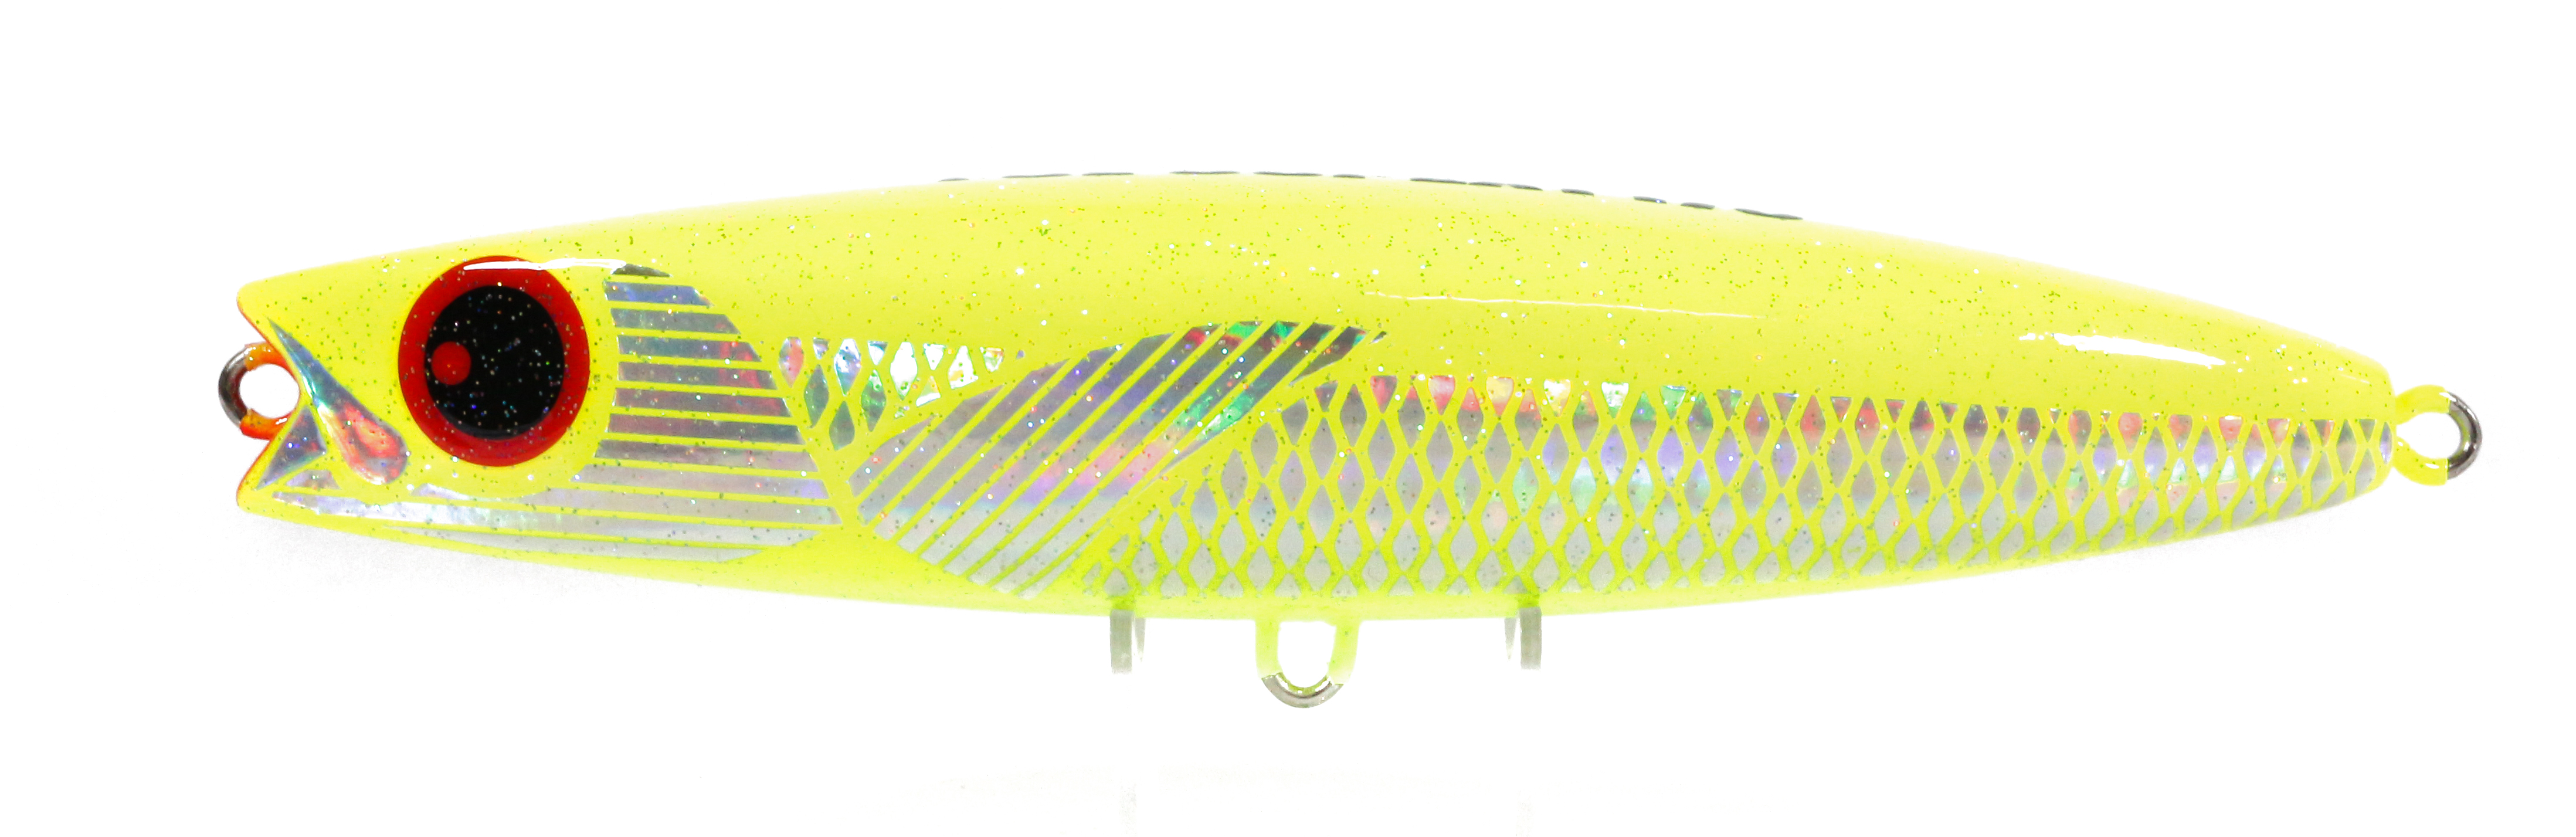 FCL Labo Stick Bait CSP EXT 170 Floating Lure ACH (8571)